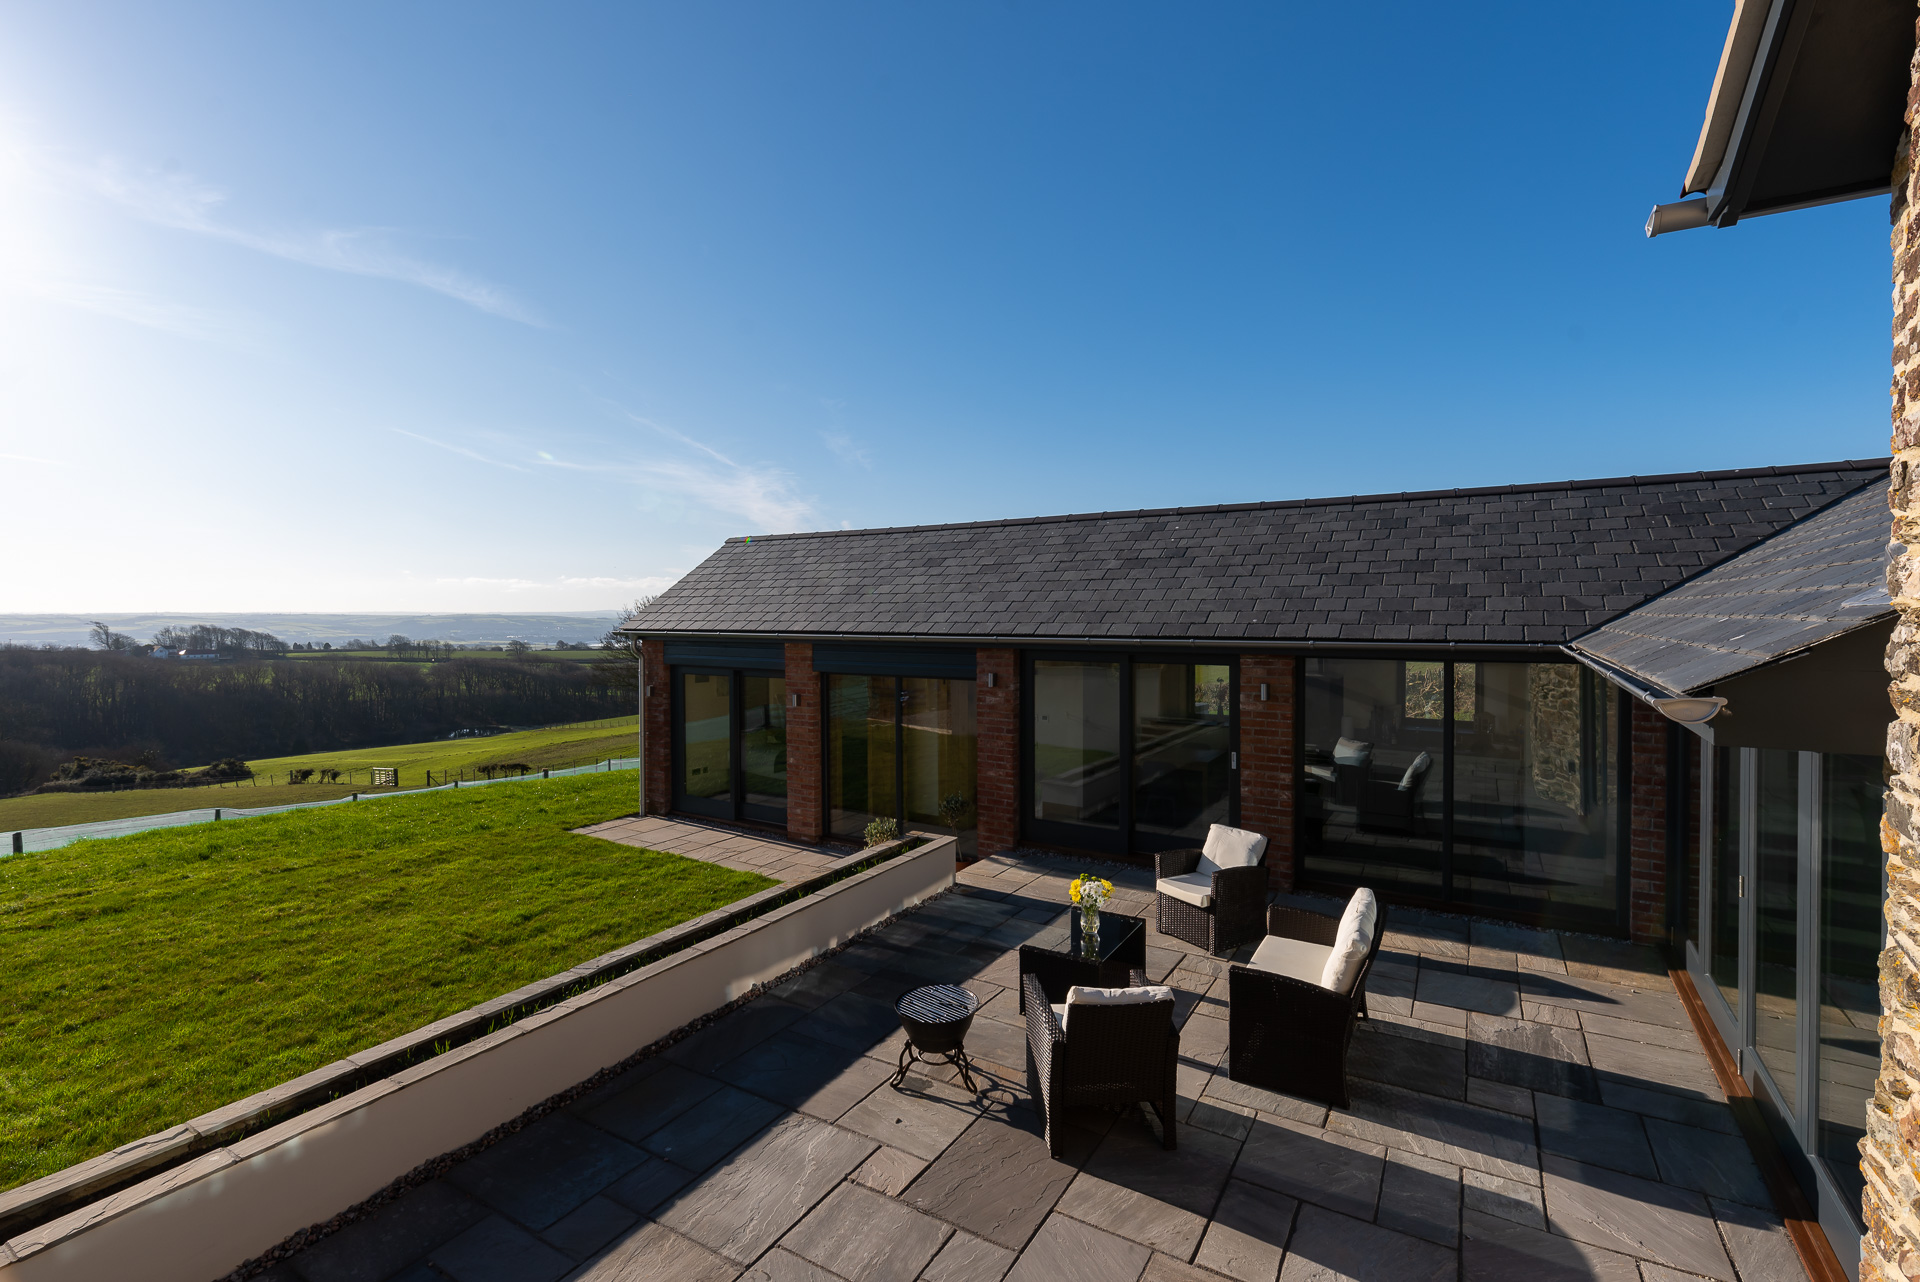 Springfield Linney - sleeps 4 near Marwood with its own hot tub, just recently added for holiday lets all year round.